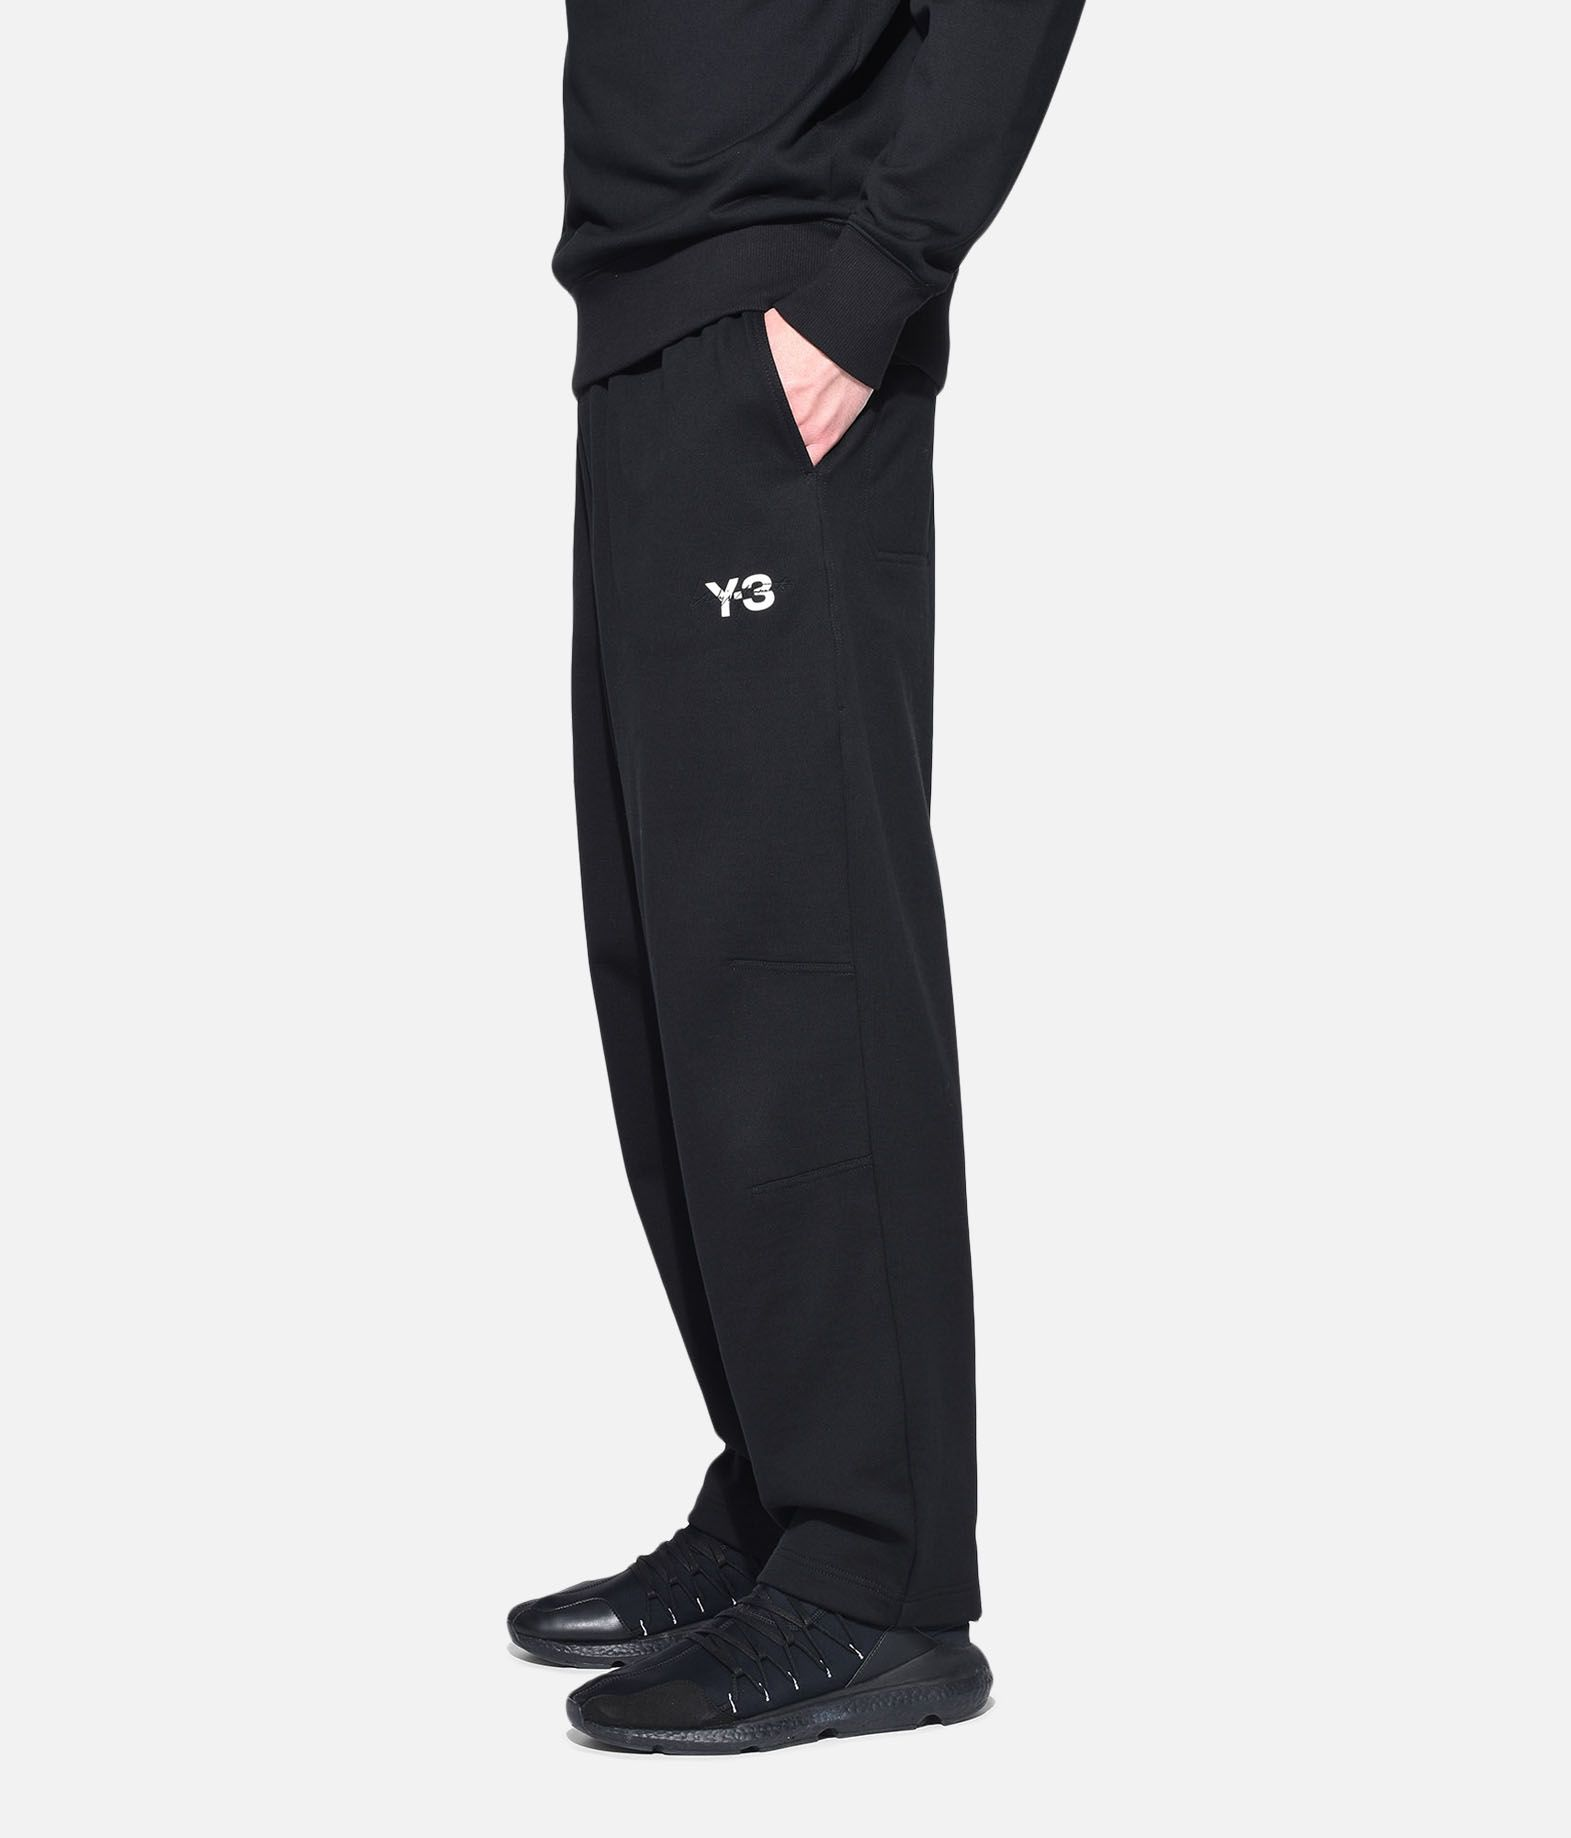 Y-3 Y-3 Sashiko Pants Sweatpants Man e